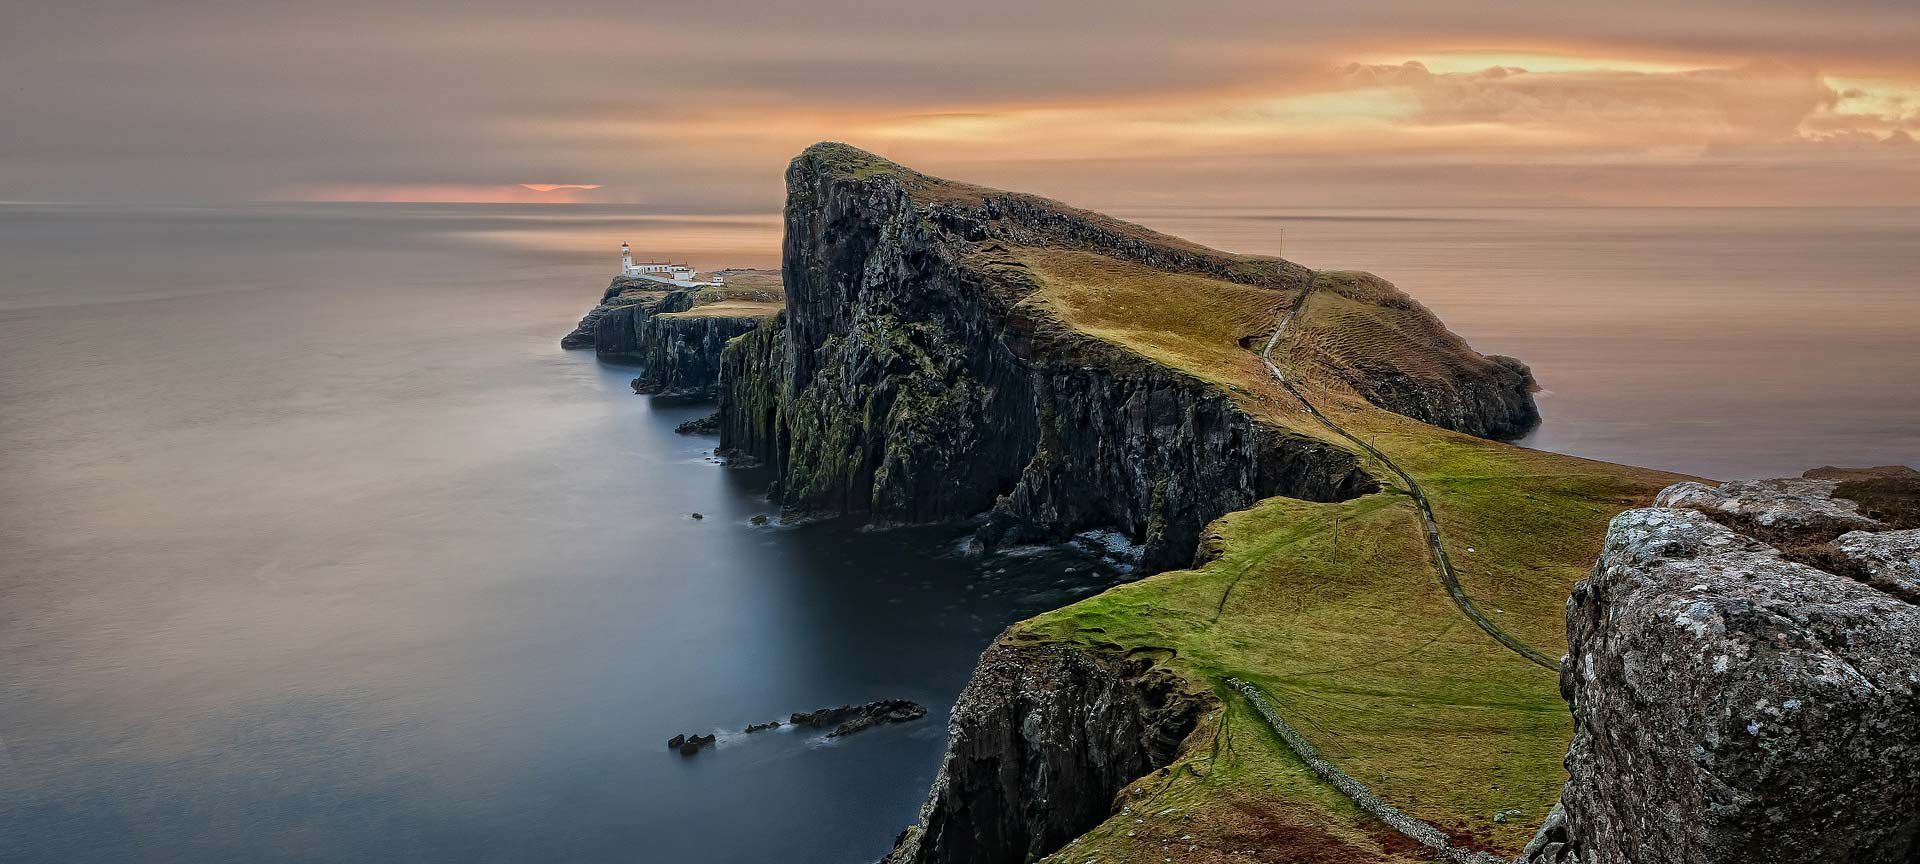 Scotish coastline